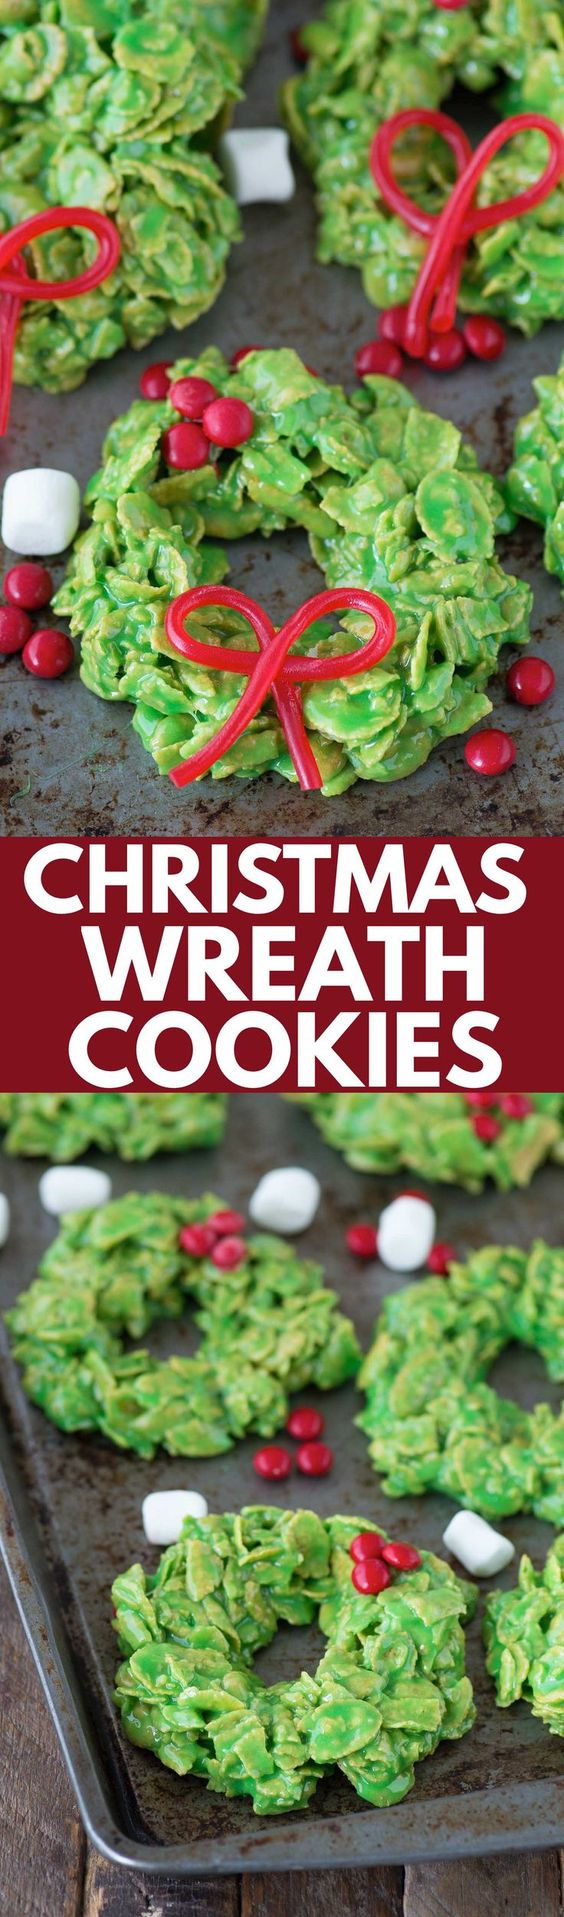 No bake christmas wreath cookies made with corn flakes and marshmallows! These only take 20 minutes to make!: